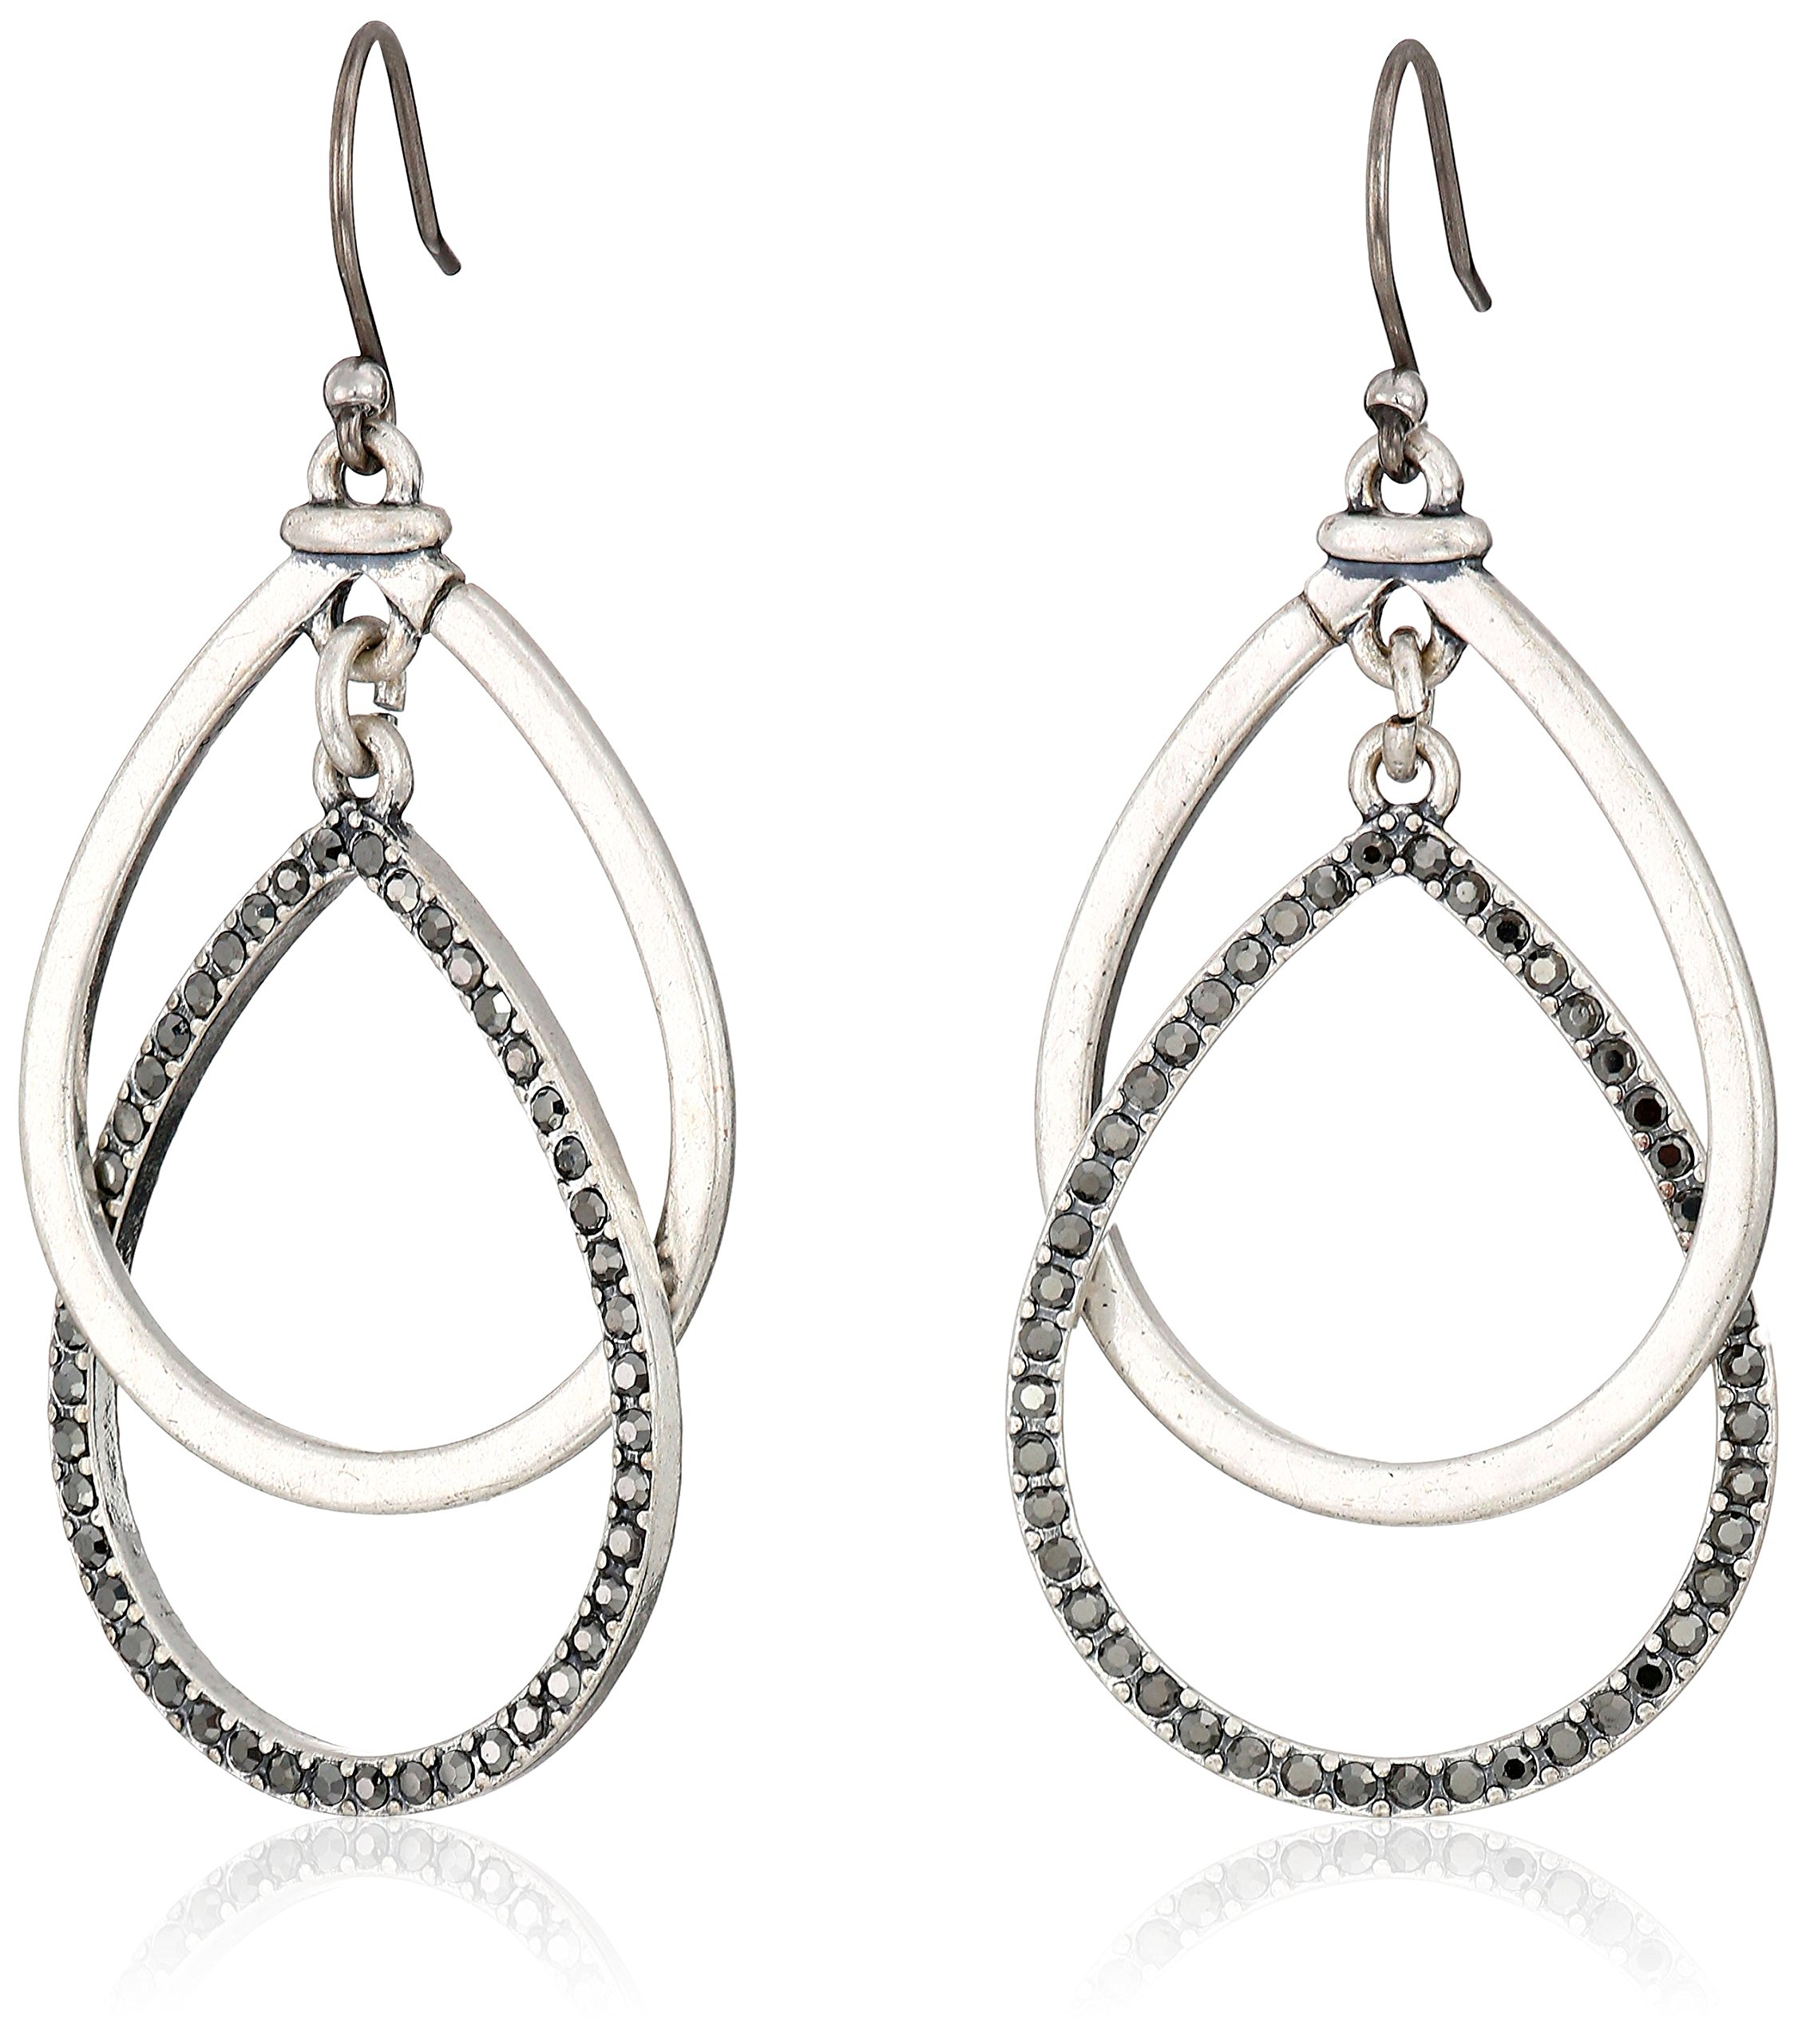 Lucky Brand Pave Double Hoop Earrings, Silver, One Size